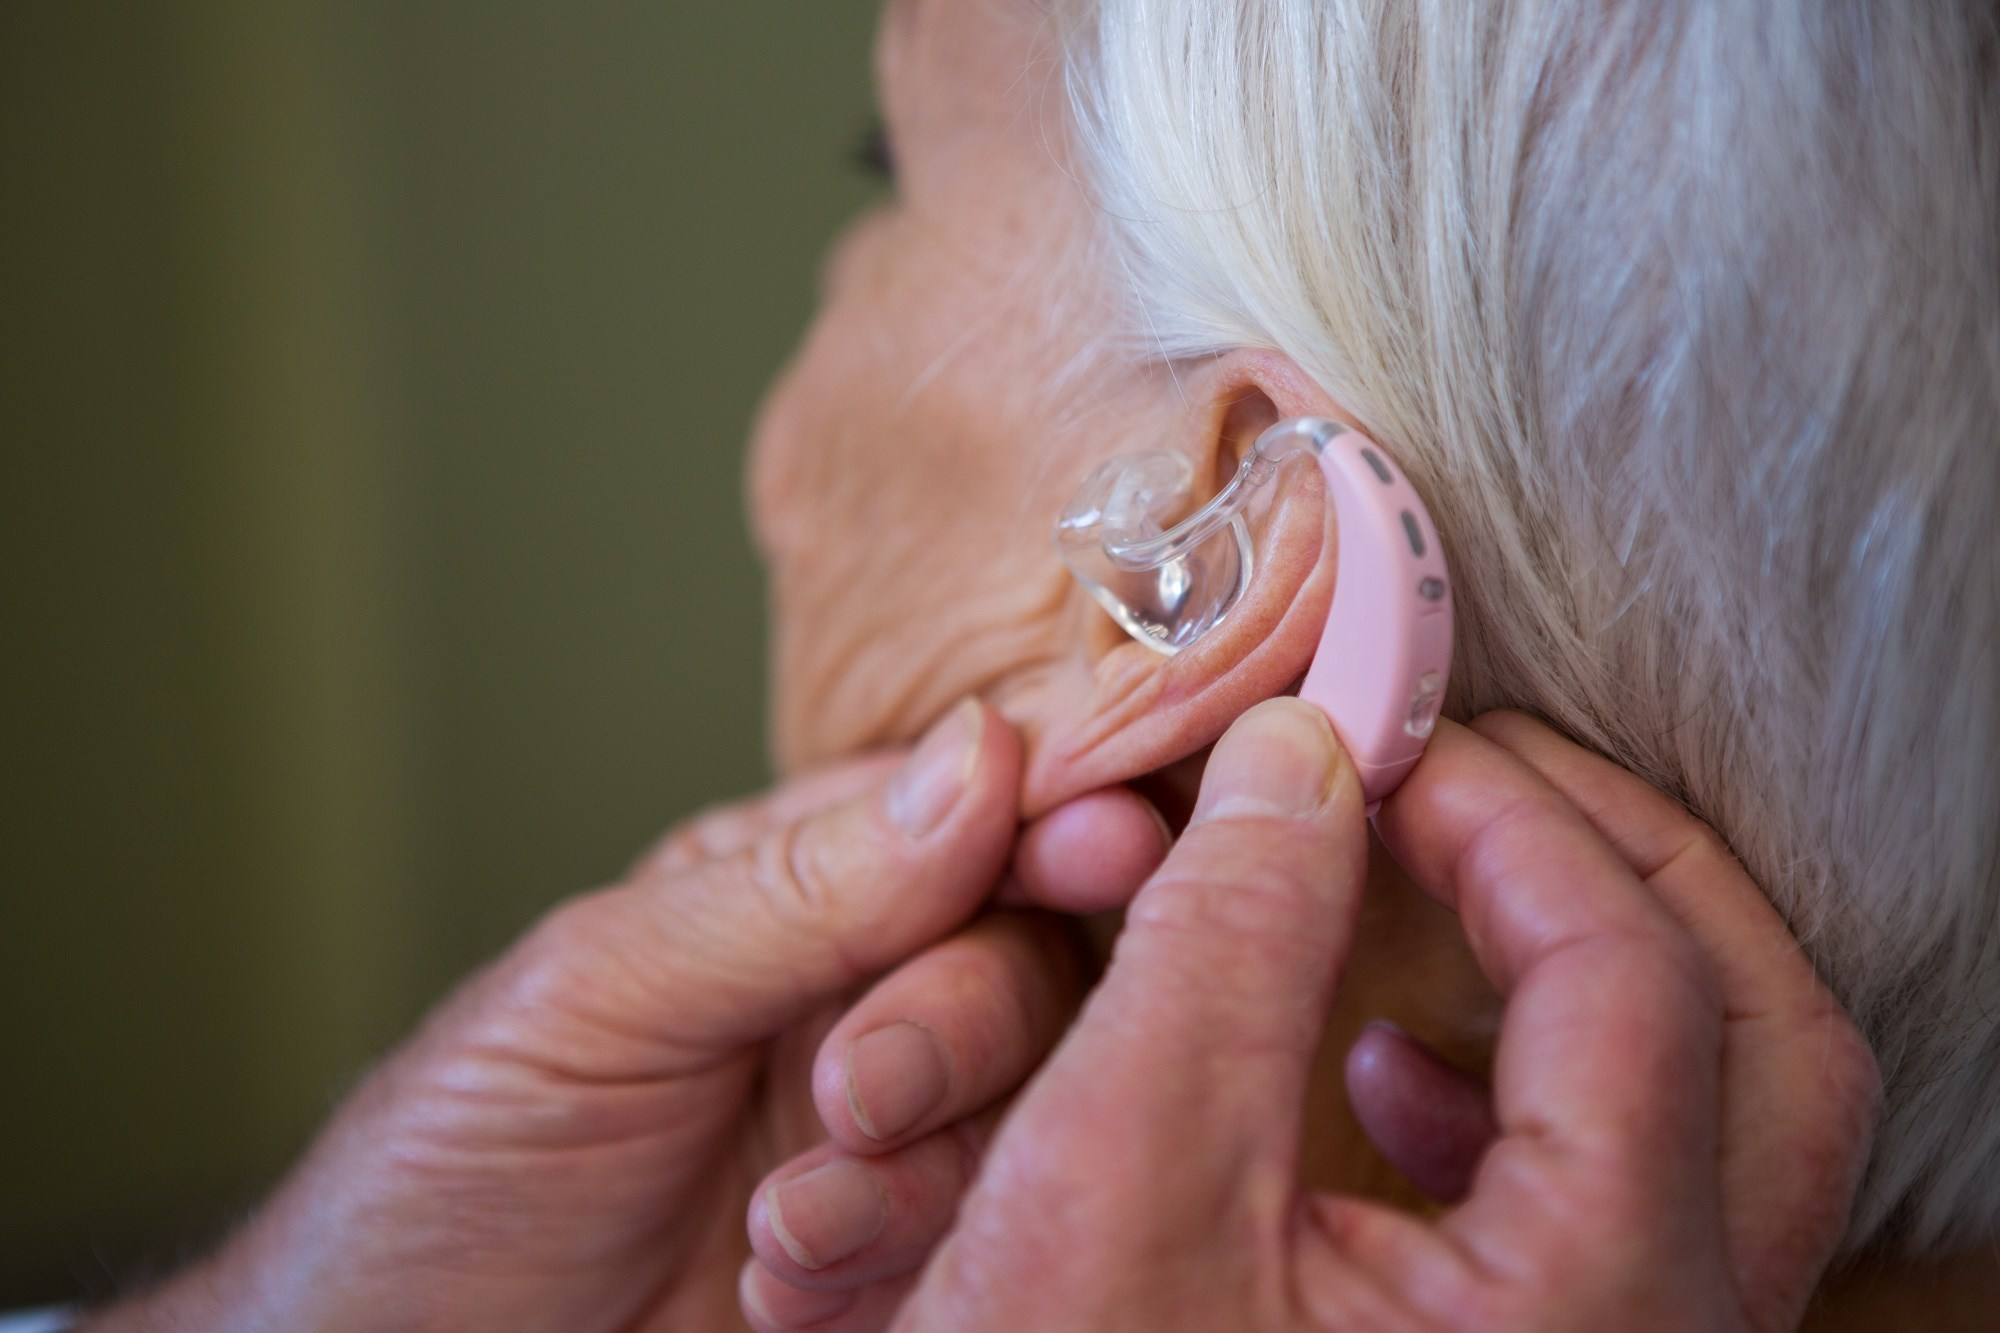 Psoriatic arthritis was independently associated with a significantly increased risk of hearing impairment.